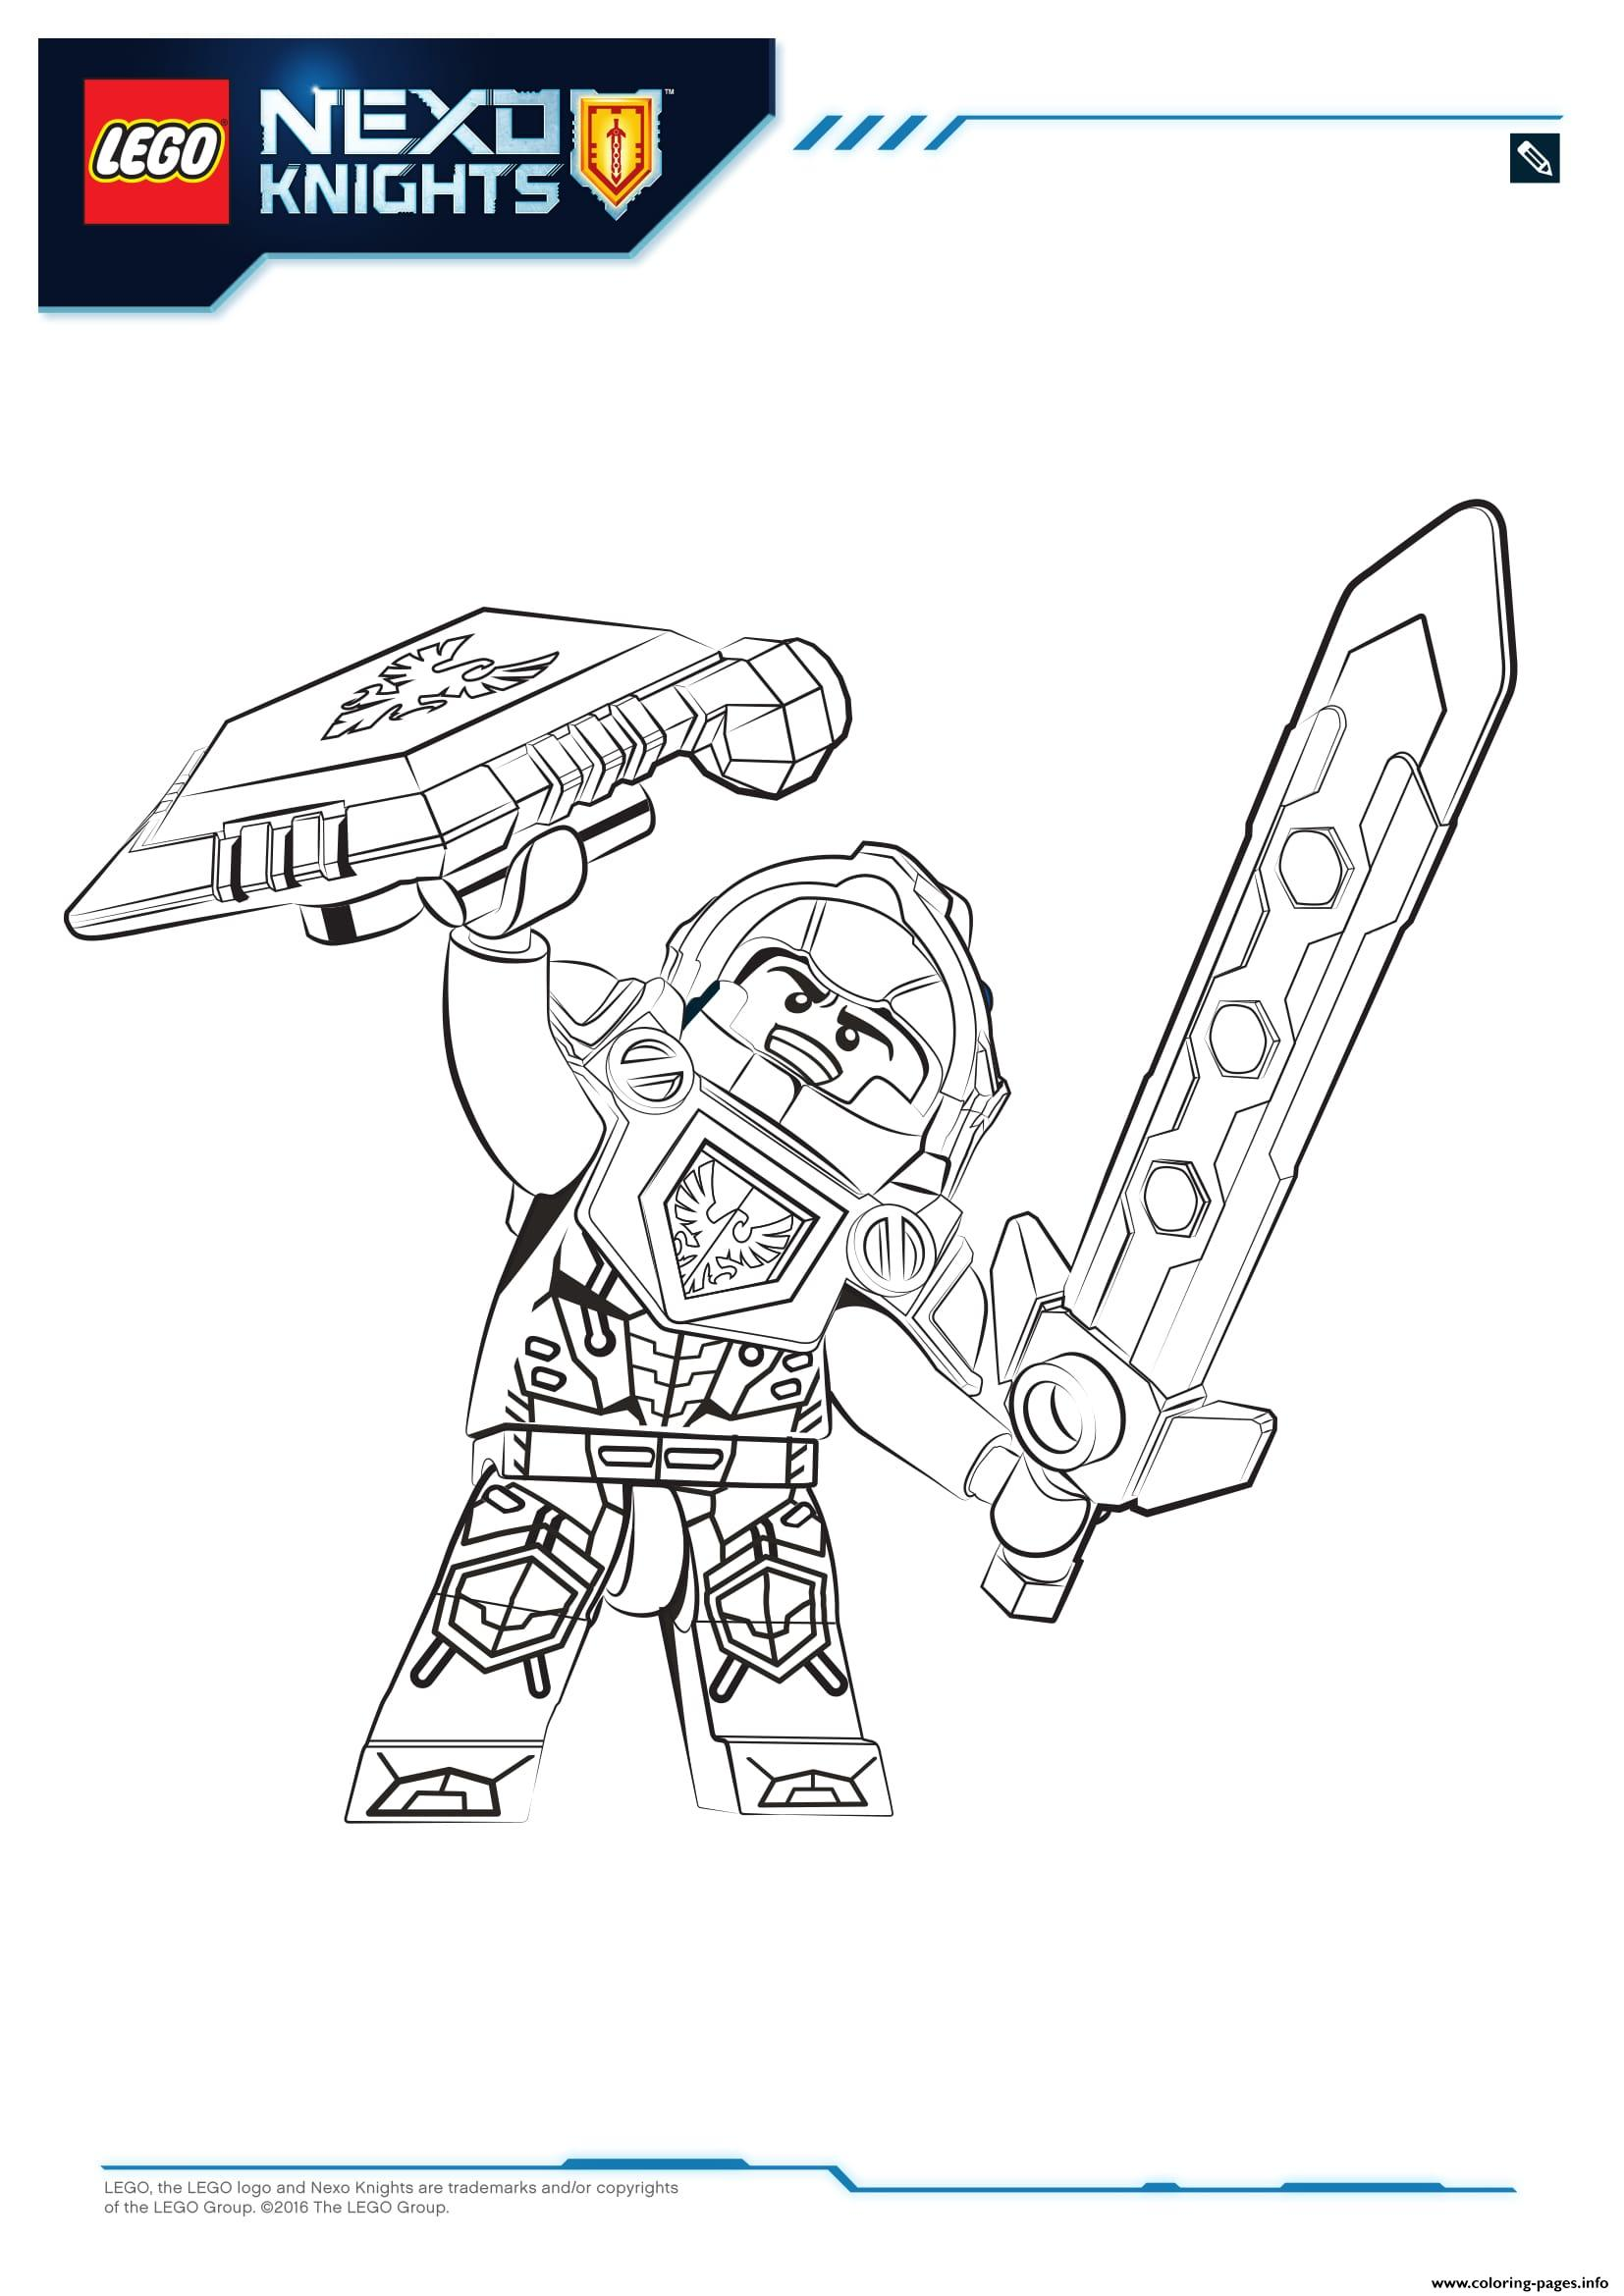 Lego Nexo Knights Clay Ausmalbilder : Nexo Knight Coloring Pages Lego Nexo Knights Coloring Pages Free